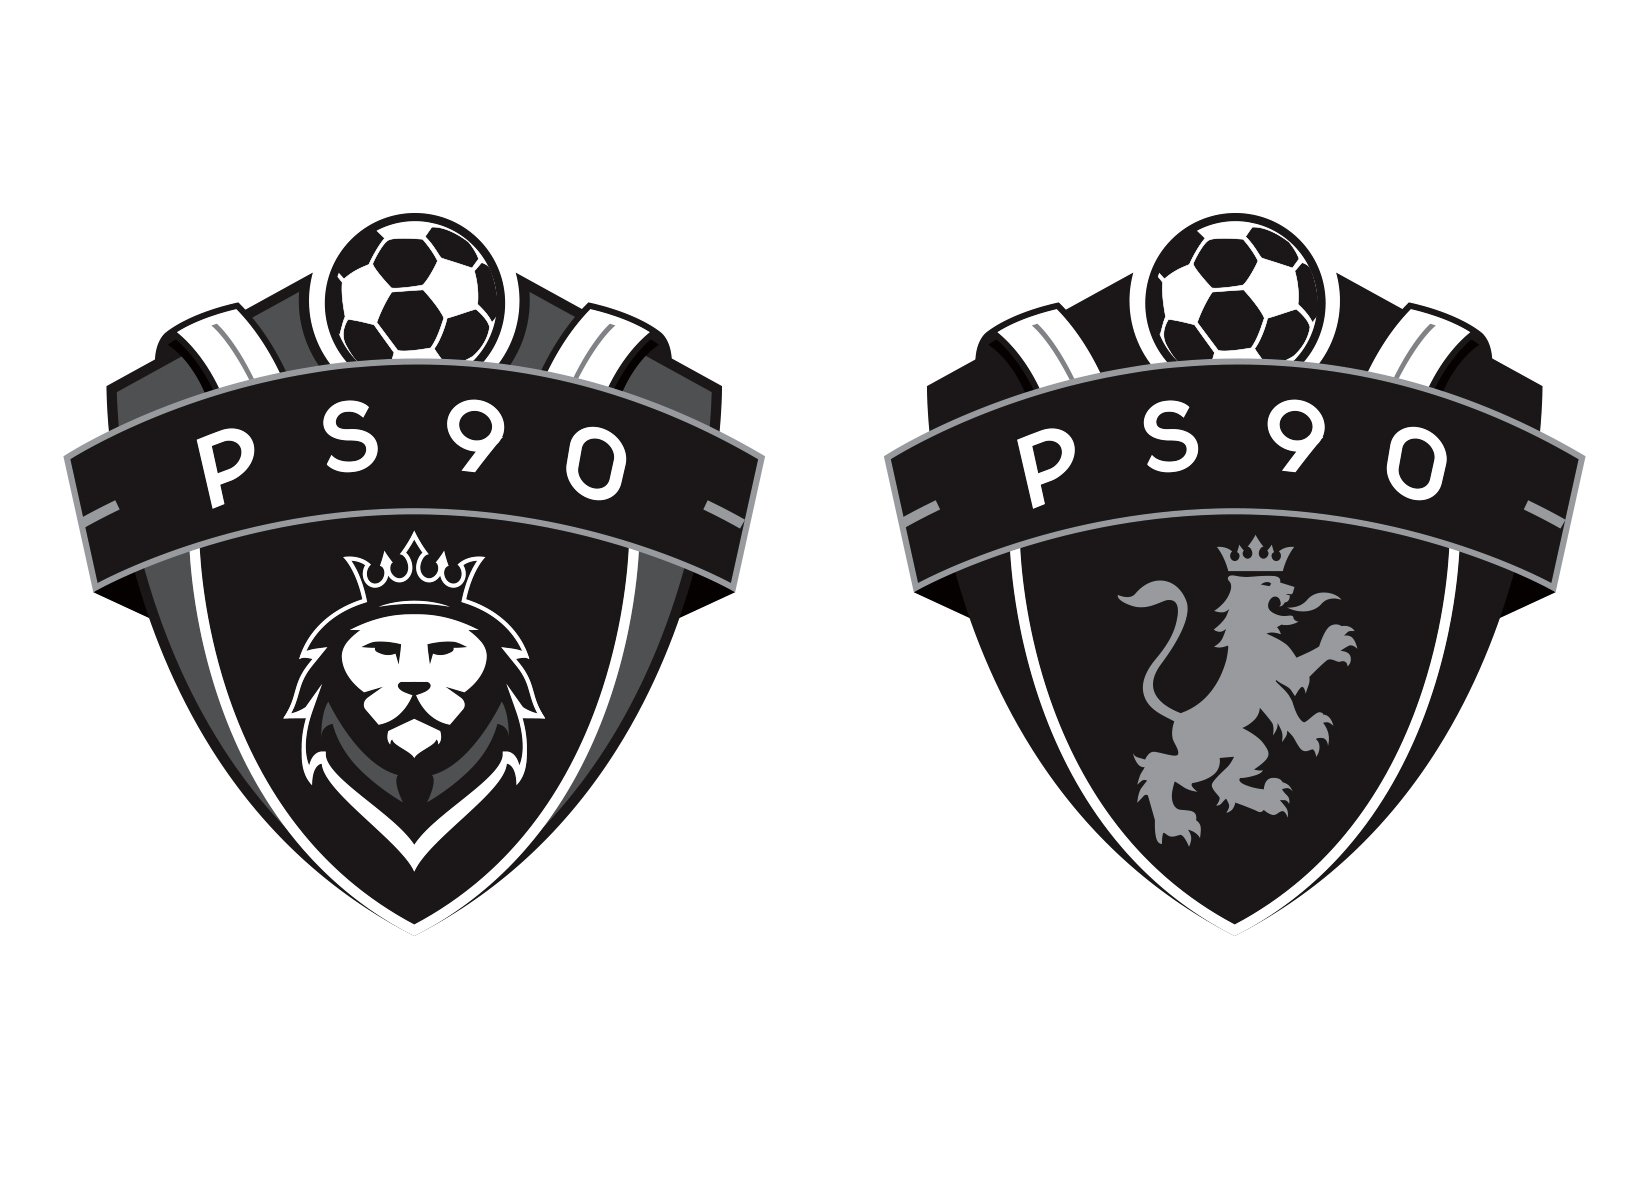 custom-soccer-crest-designs-for-ps90-soccer-1.jpg